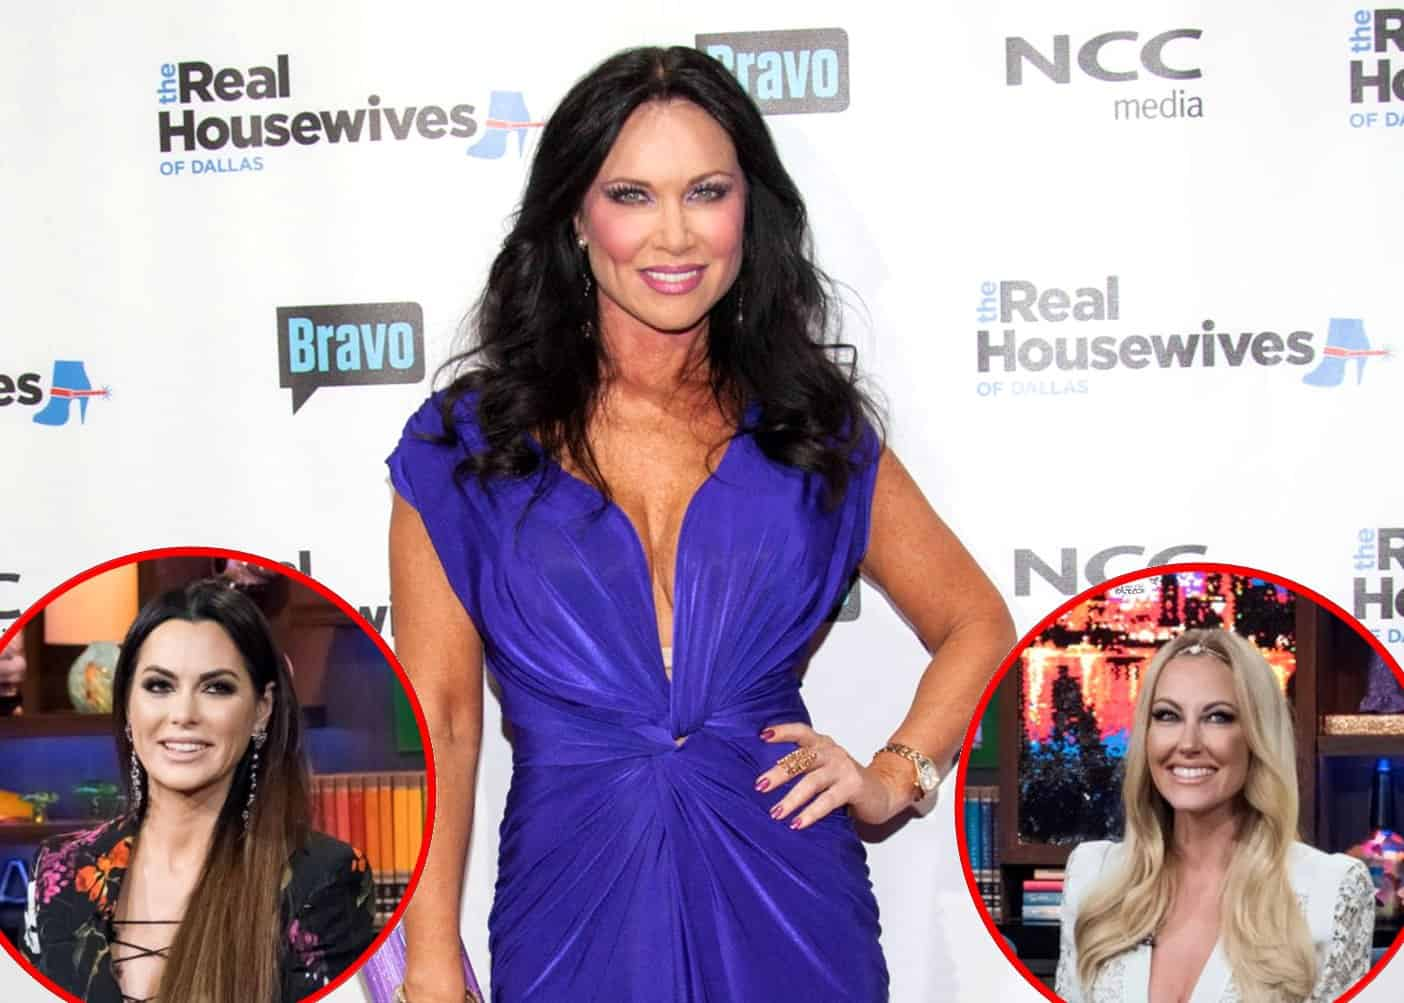 RHOD Leeanne Locken talks Dandra Simmons and Stephanie Hollman